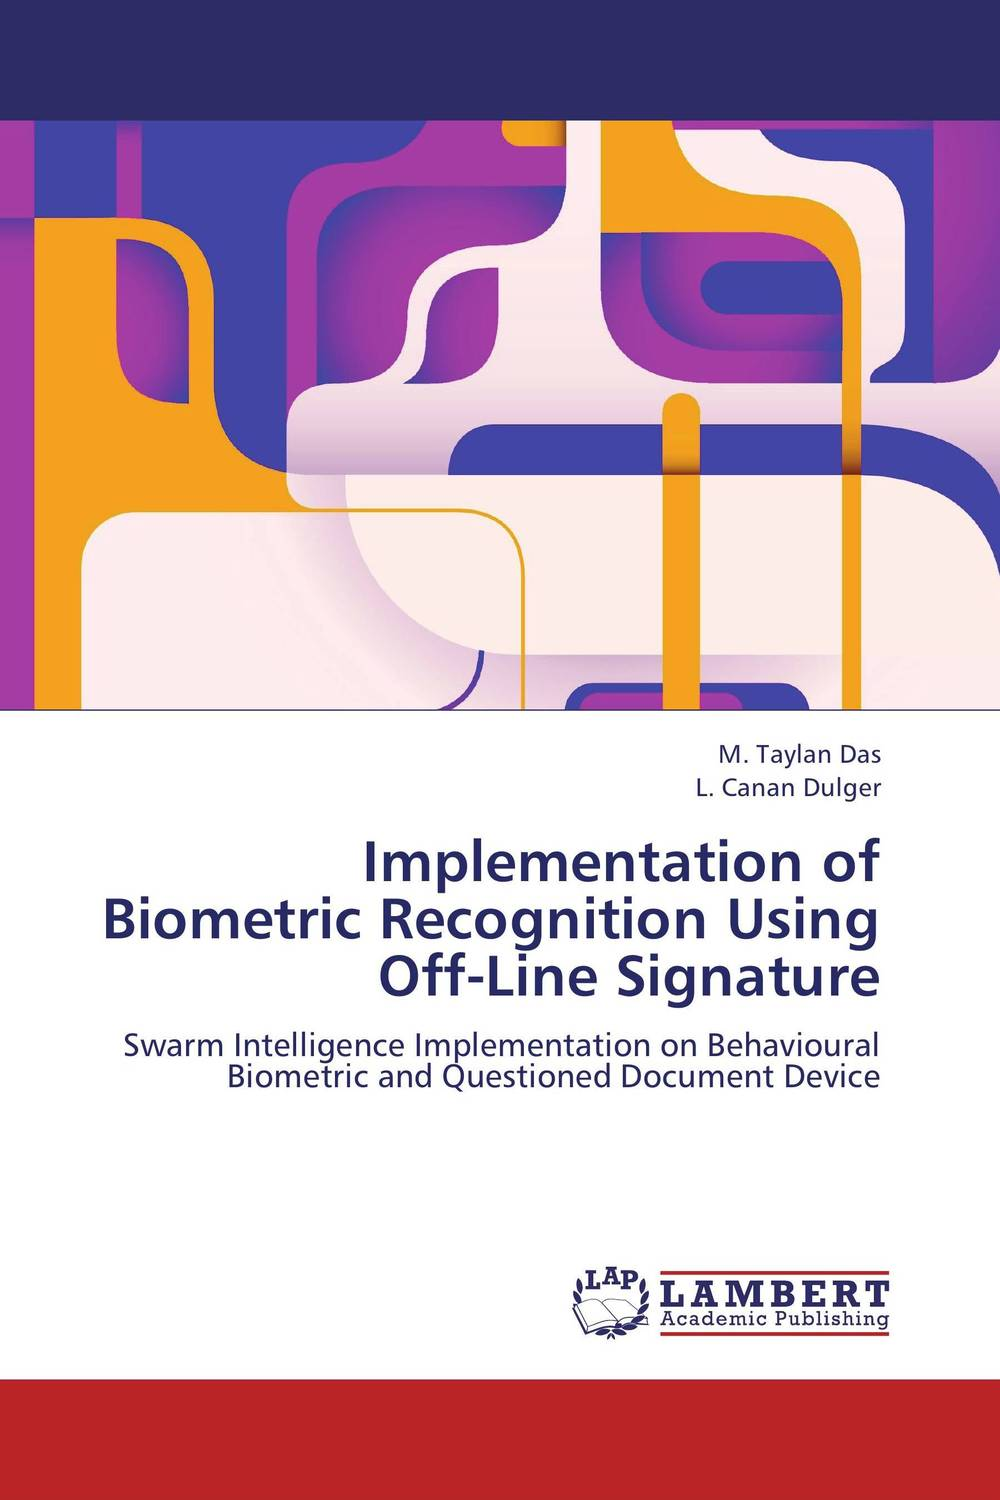 Implementation of Biometric Recognition Using Off-Line Signature